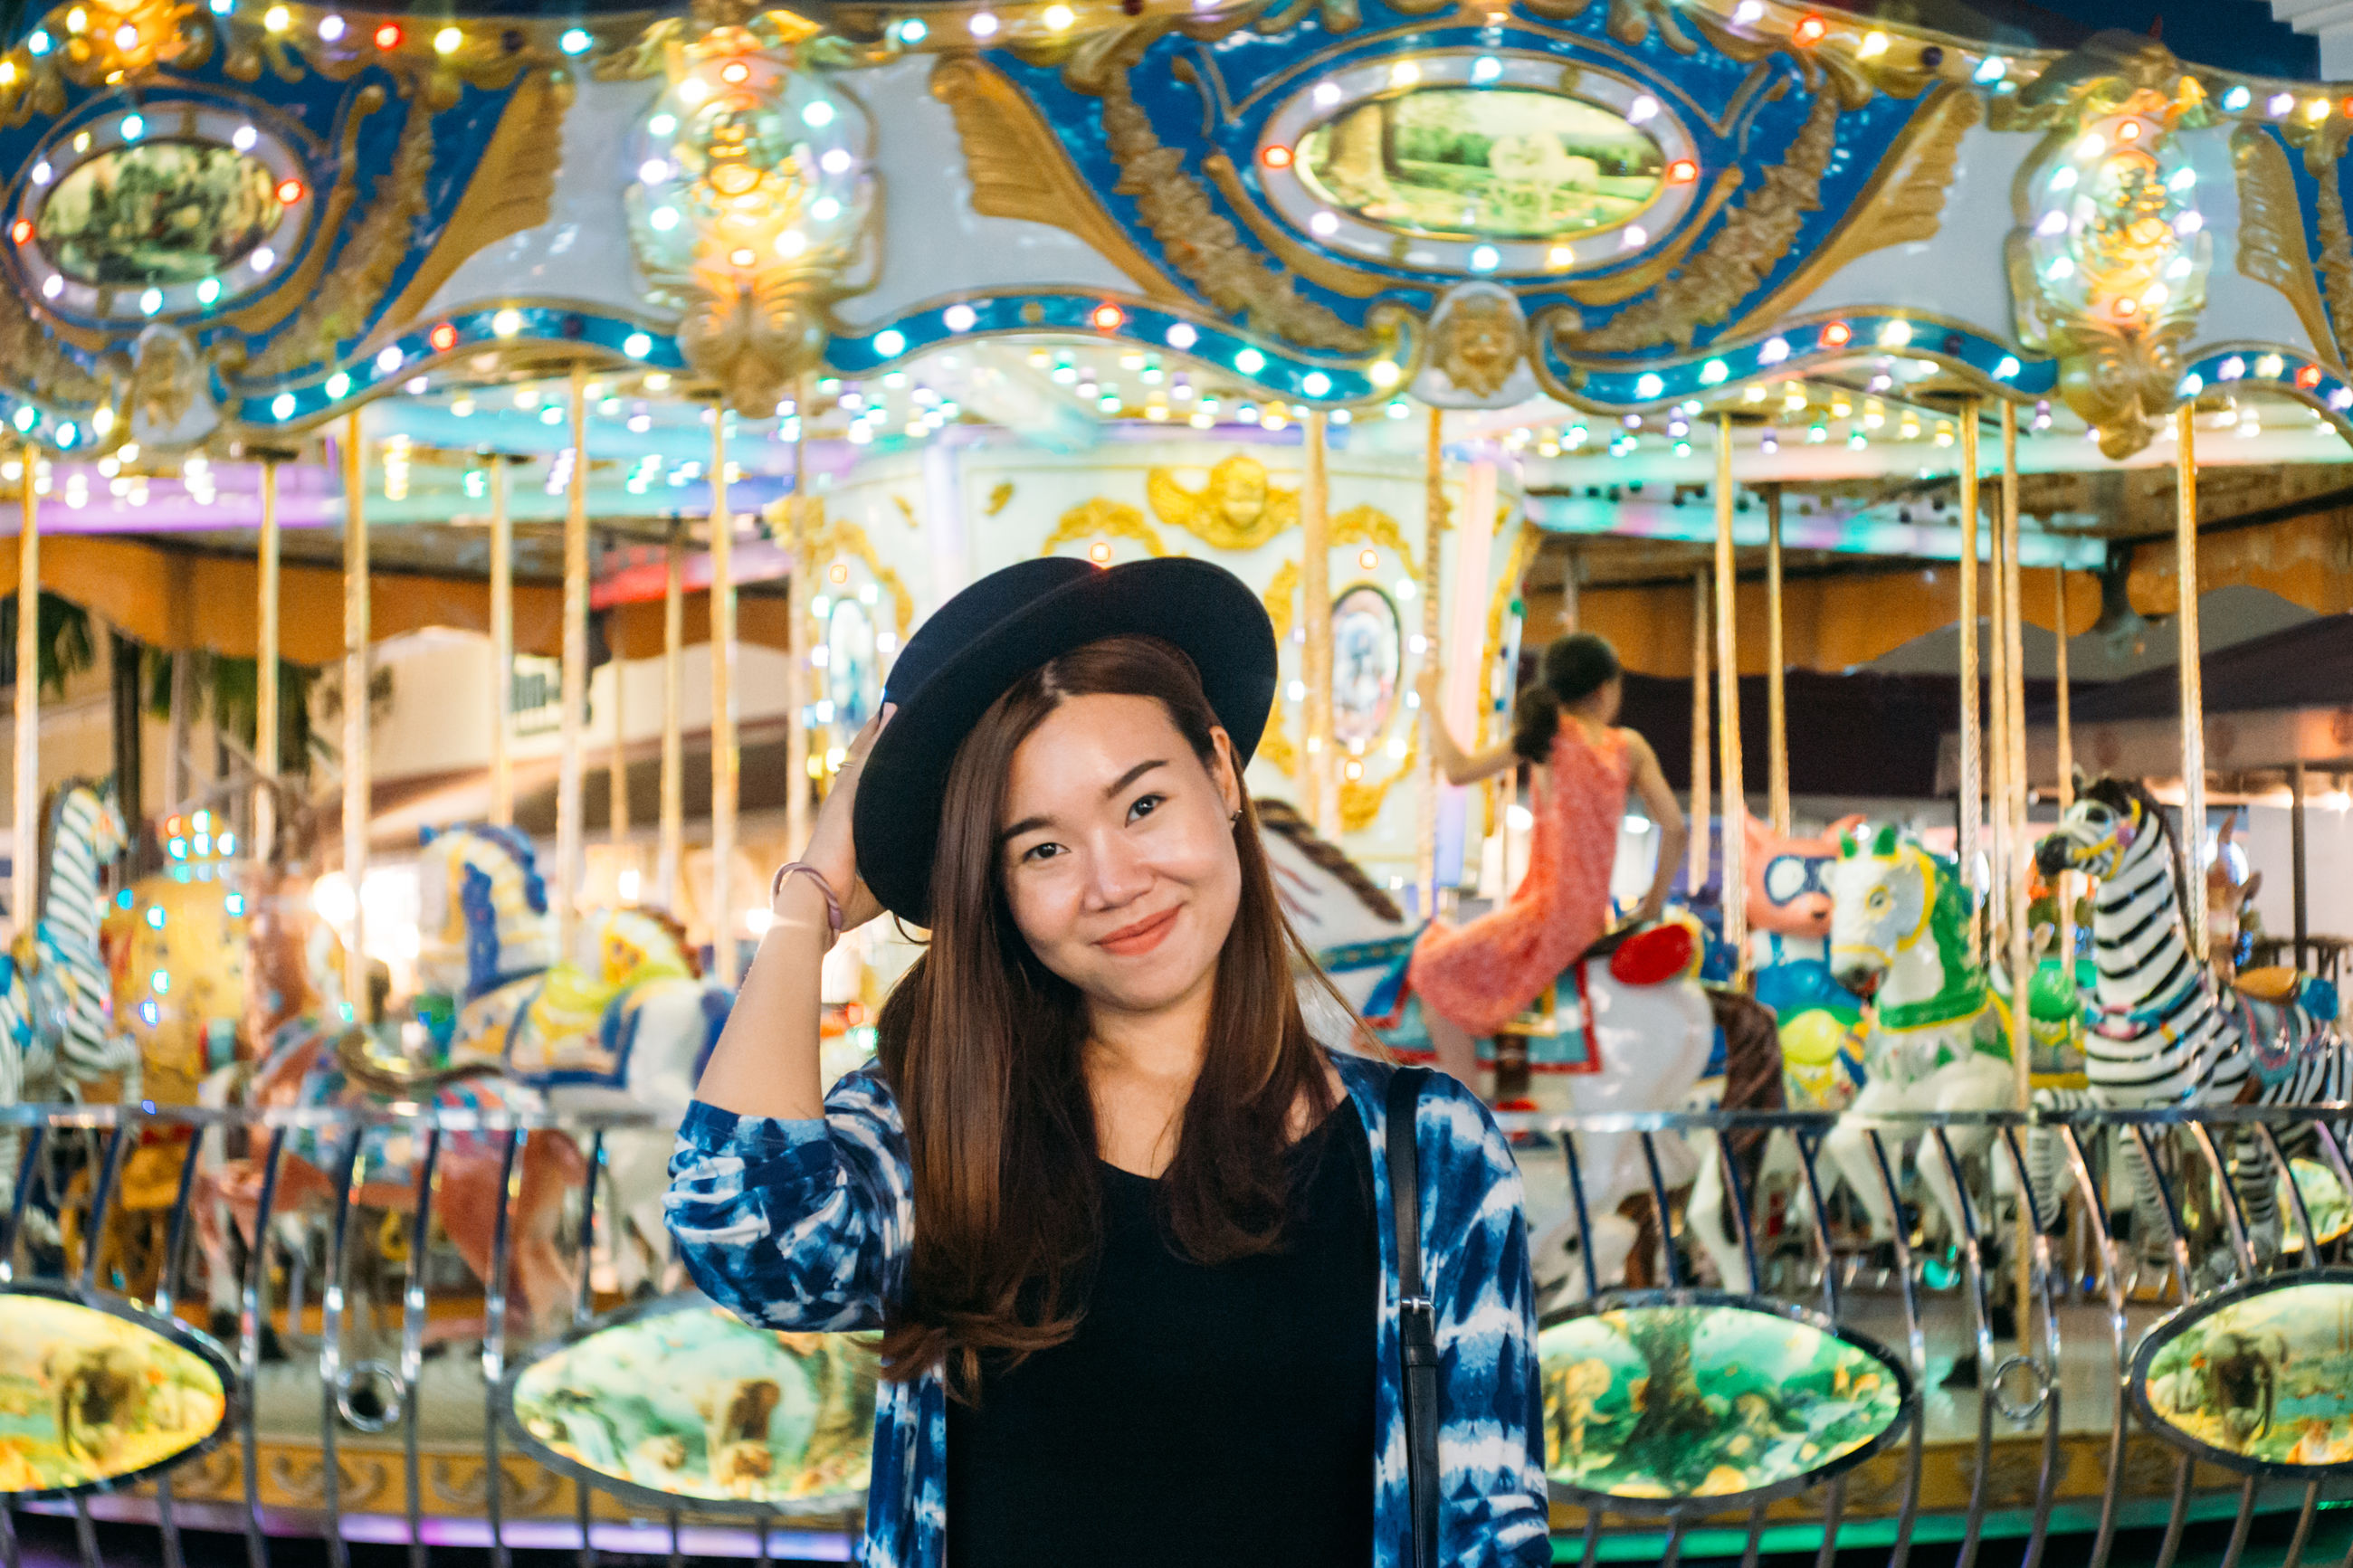 amusement park, leisure activity, one person, young adult, adult, front view, retail, carousel, arts culture and entertainment, amusement park ride, portrait, enjoyment, casual clothing, women, happiness, smiling, waist up, real people, standing, hairstyle, beautiful woman, consumerism